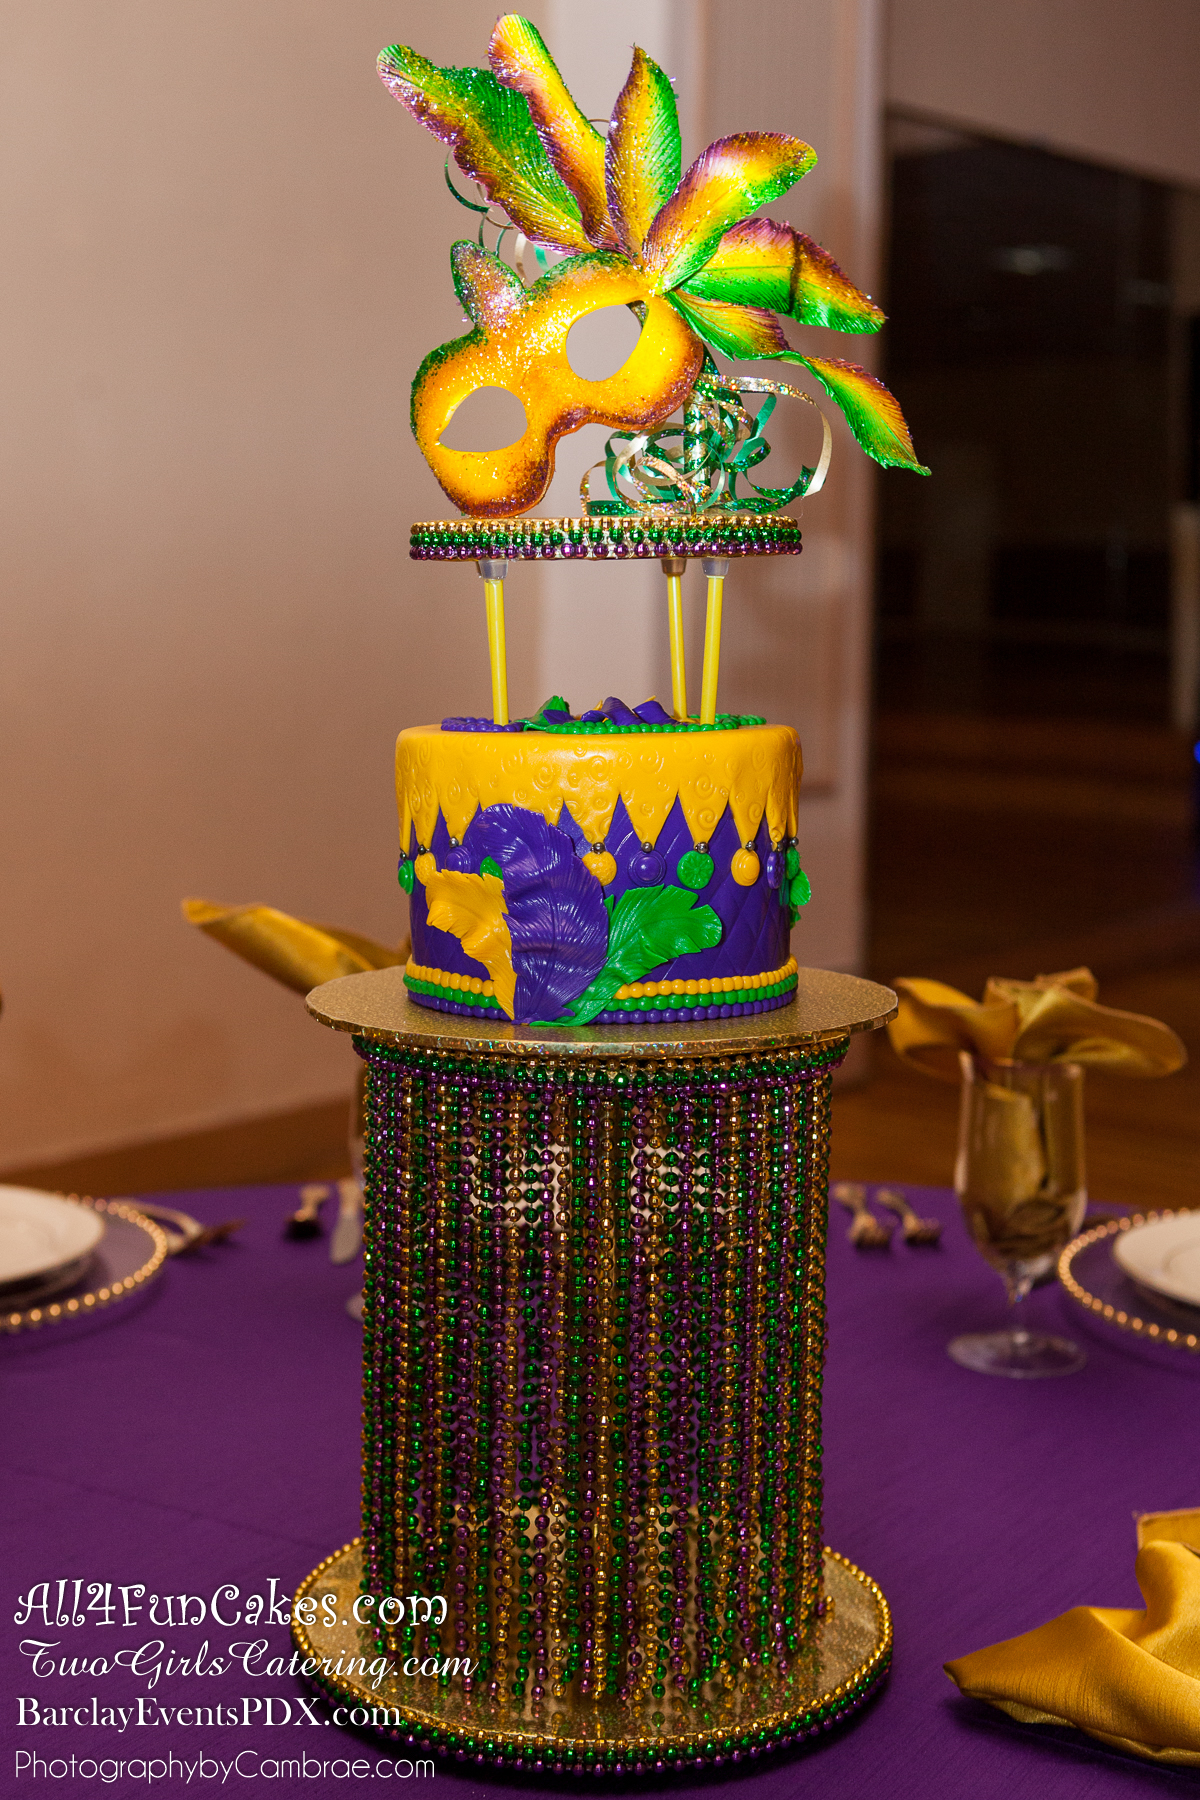 Pure Heaven White Chocolate Cake, Lemon Fruit Filling, White Chocolate Buttercream and Marshmallow Fondant. Hand-Crafted Pastillage Sugar Mask Topper and Custom Beaded Stand - Mardi Gras Cake Table - All4Fun Cakes LLC 2018